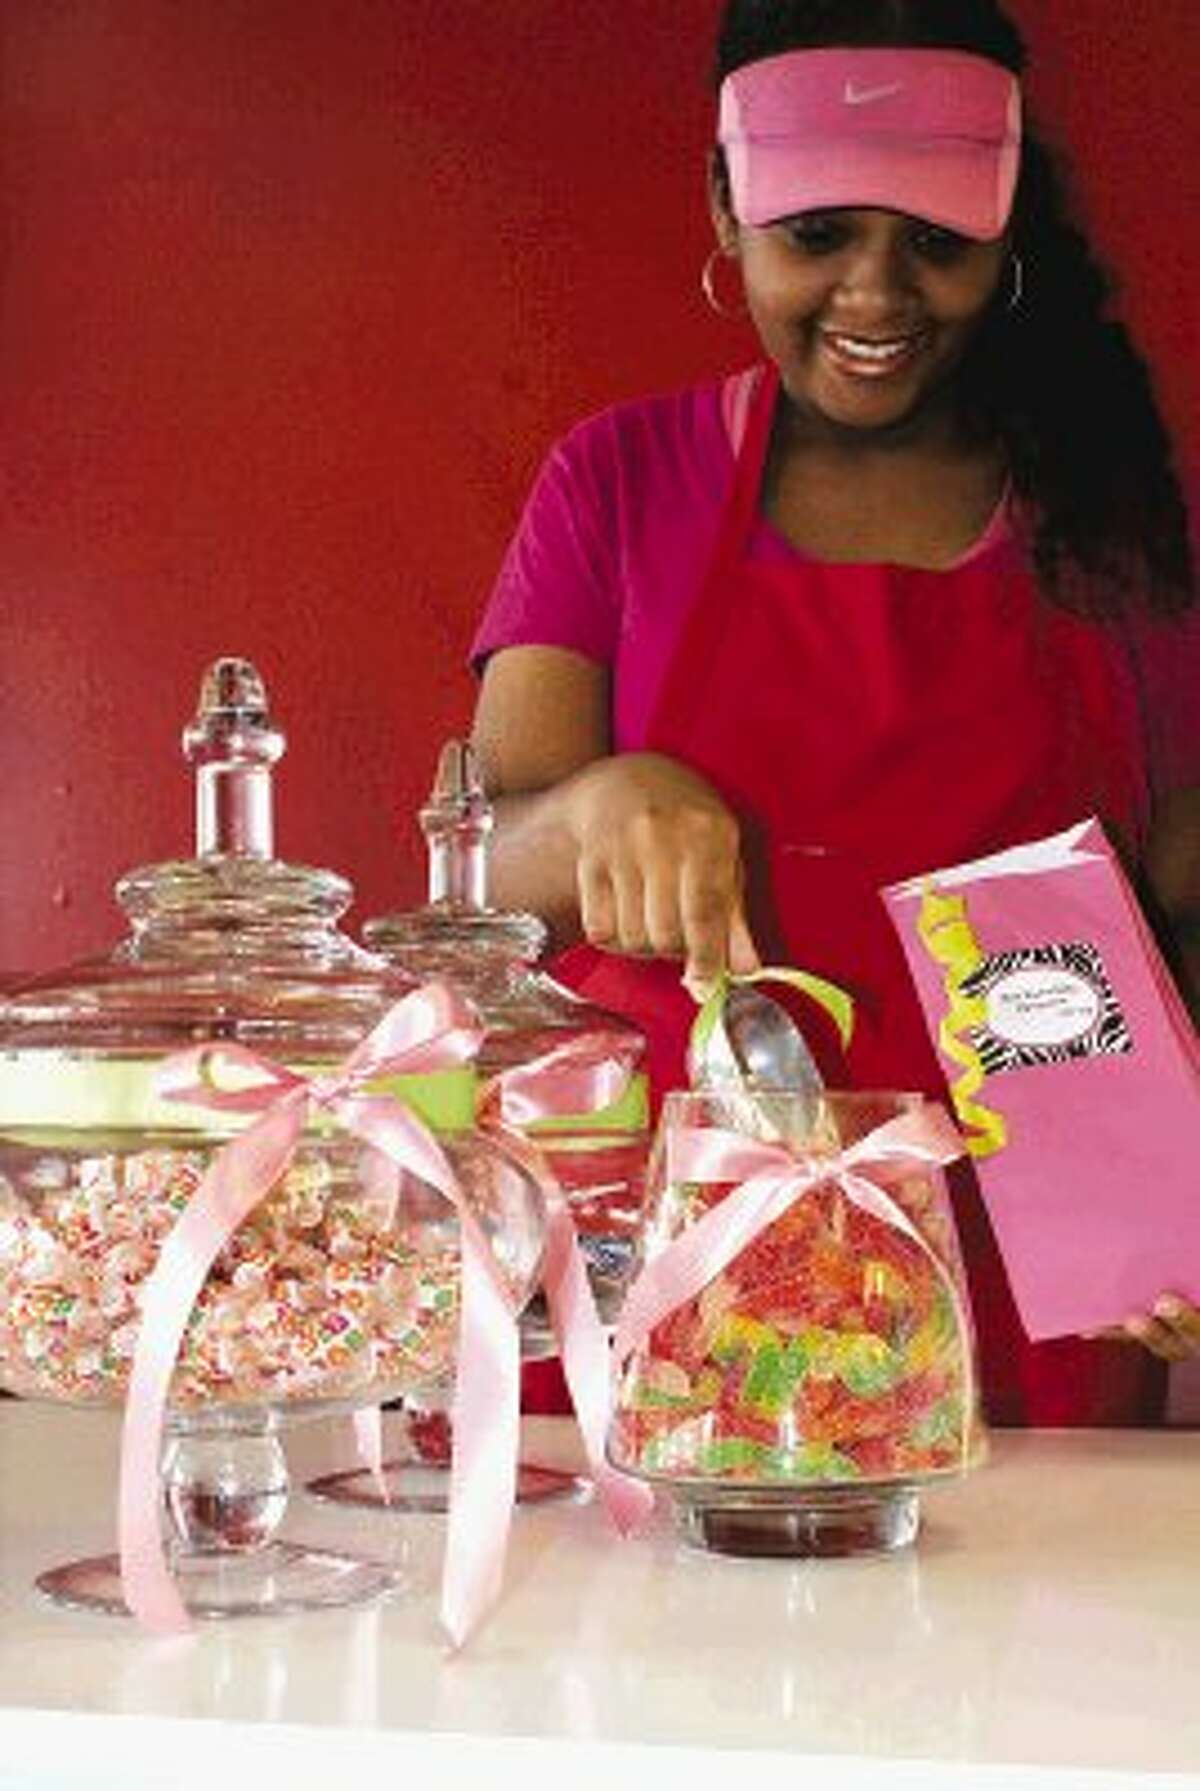 Summer Bowie helps serve customers at her families retro candy store, I.Candy Sweets.